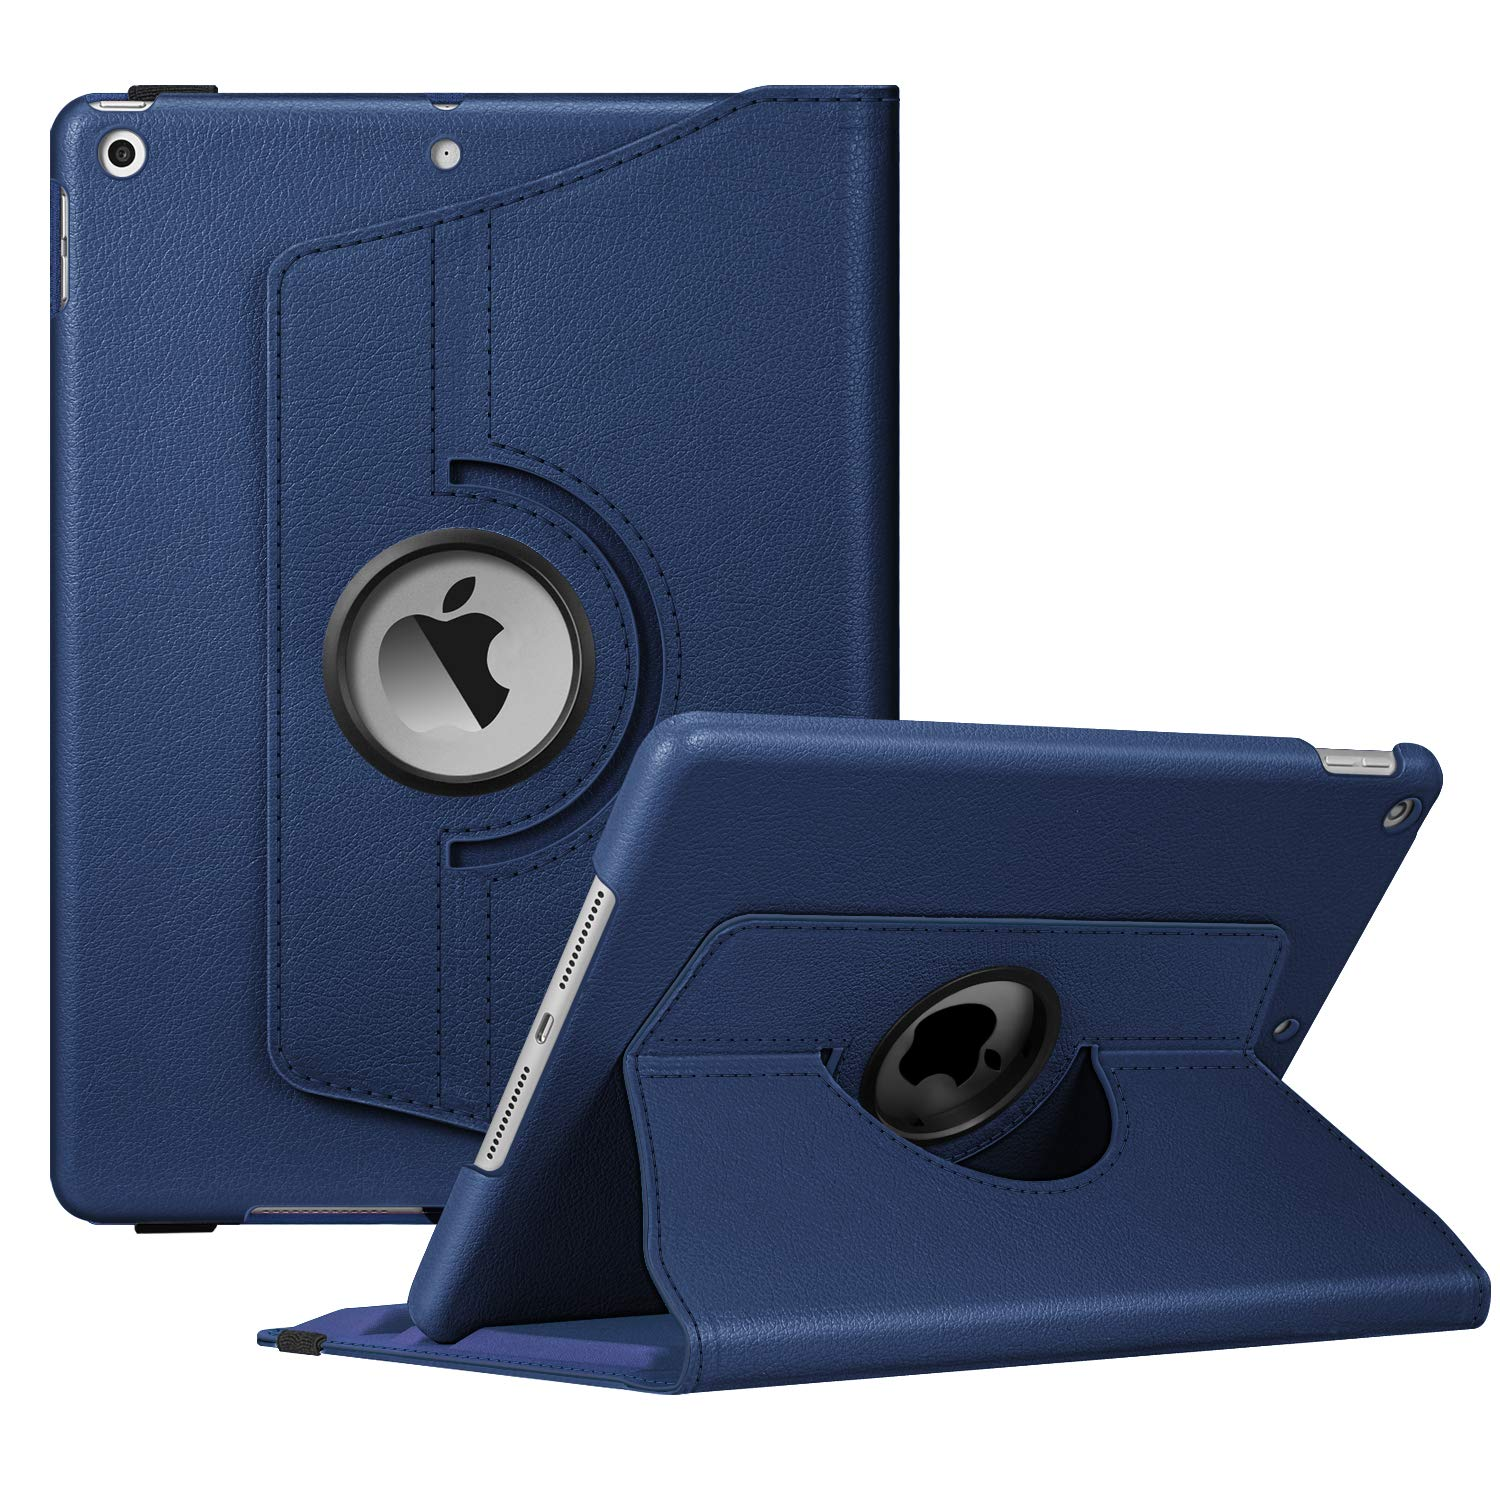 """Fintie Rotating Case for New iPad 7th Generation 10.2 Inch 2019 - [Built-in Pencil Holder] 360 Degree Rotating Smart Protective Stand Cover with Auto Sleep/Wake for iPad 10.2"""" Tablet, Navy"""